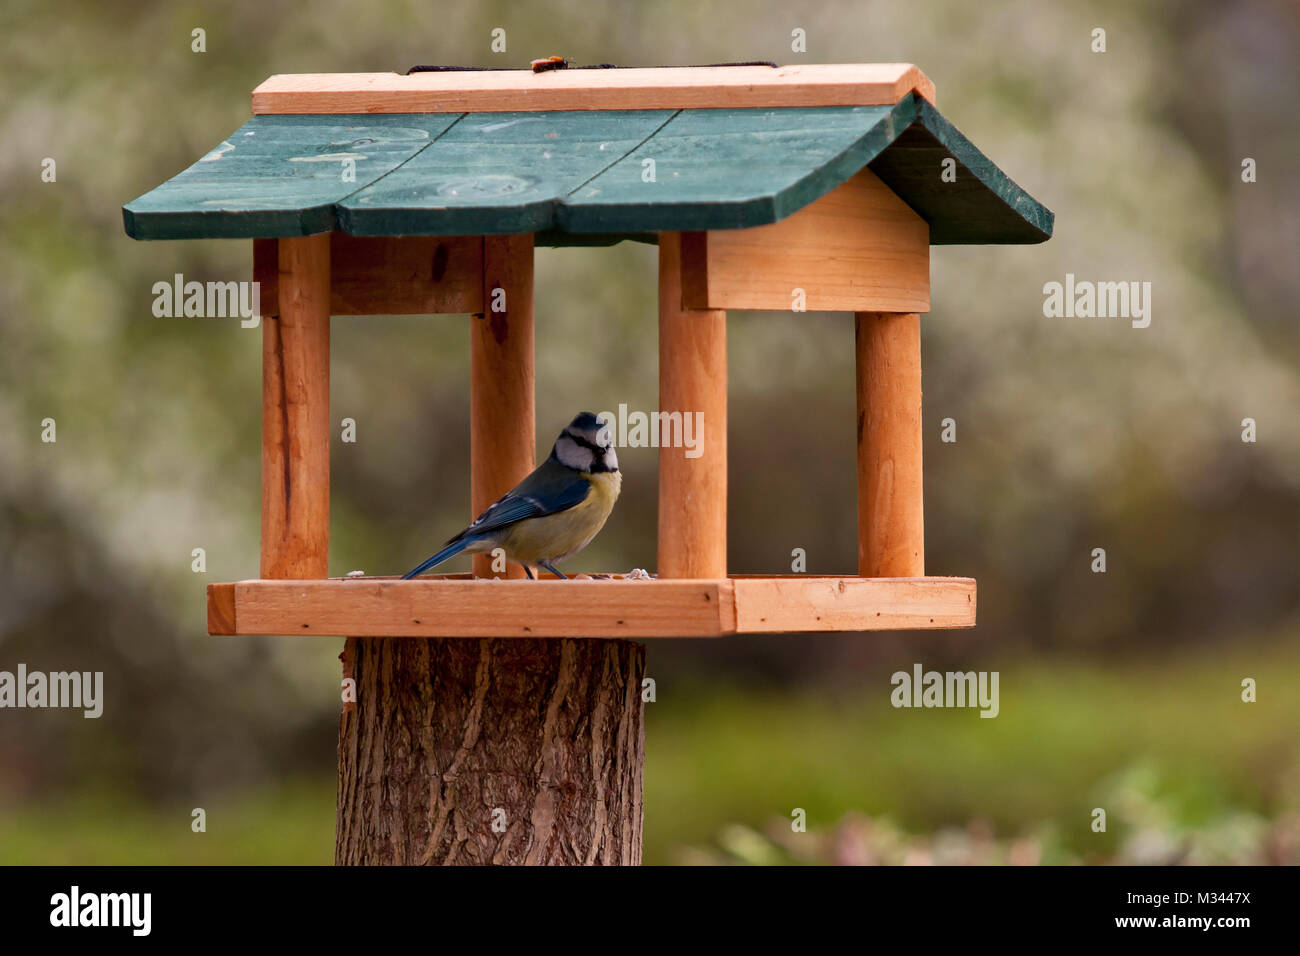 Kohlmeise Vogelhaus Blaumeise Stock Photos Blaumeise Stock Images Alamy